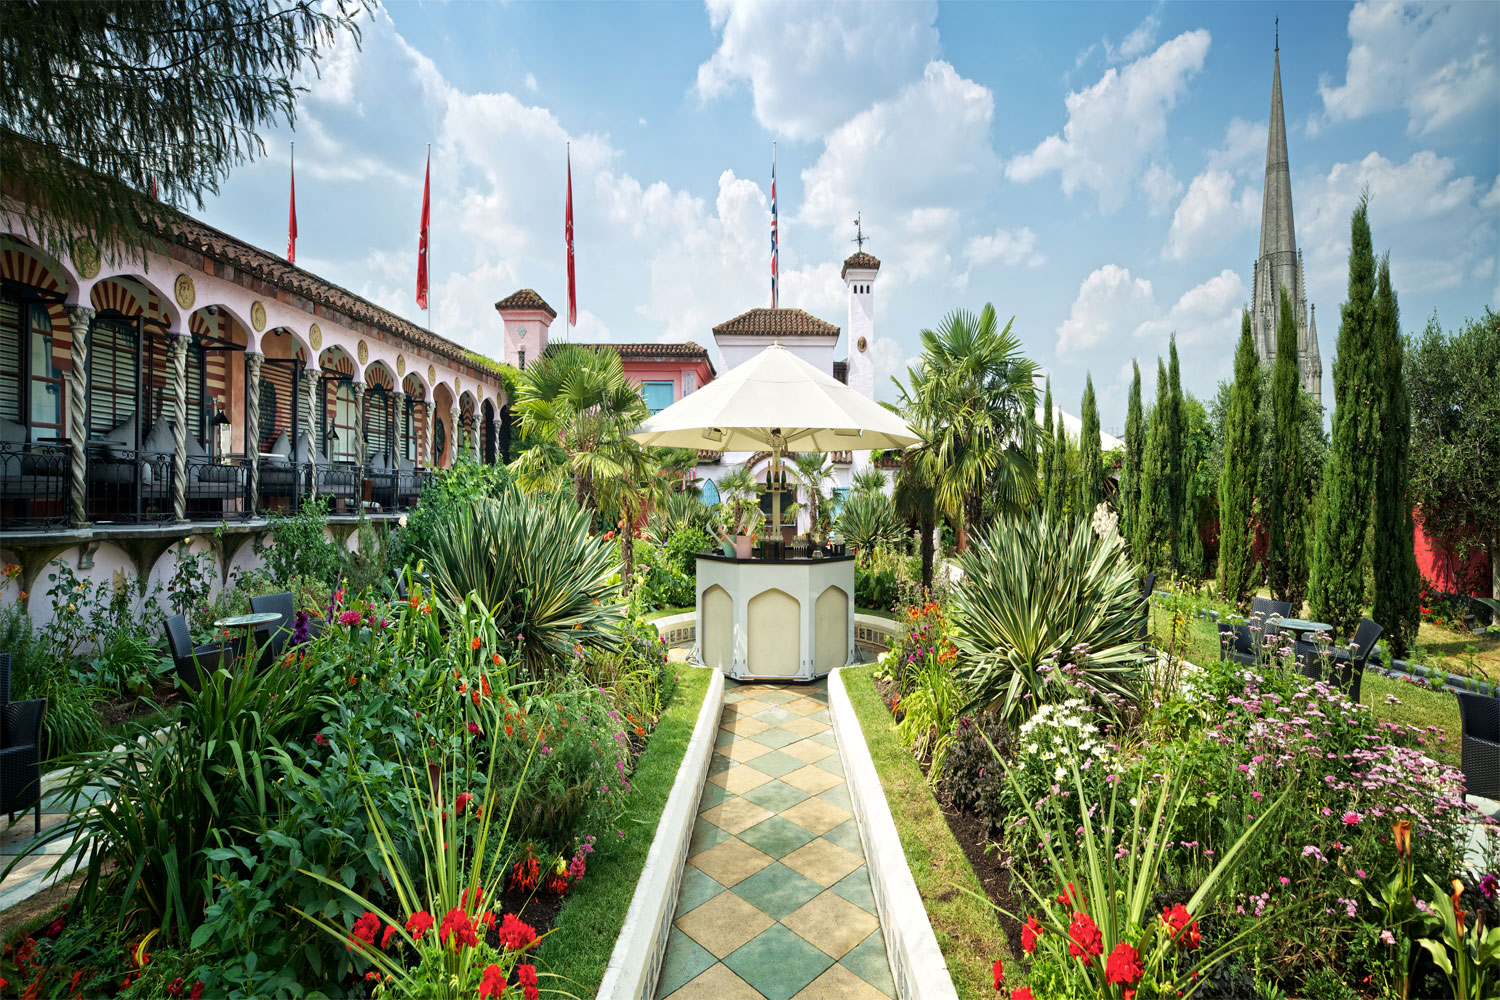 Kensington Roof Gardens To Close After 37 Years